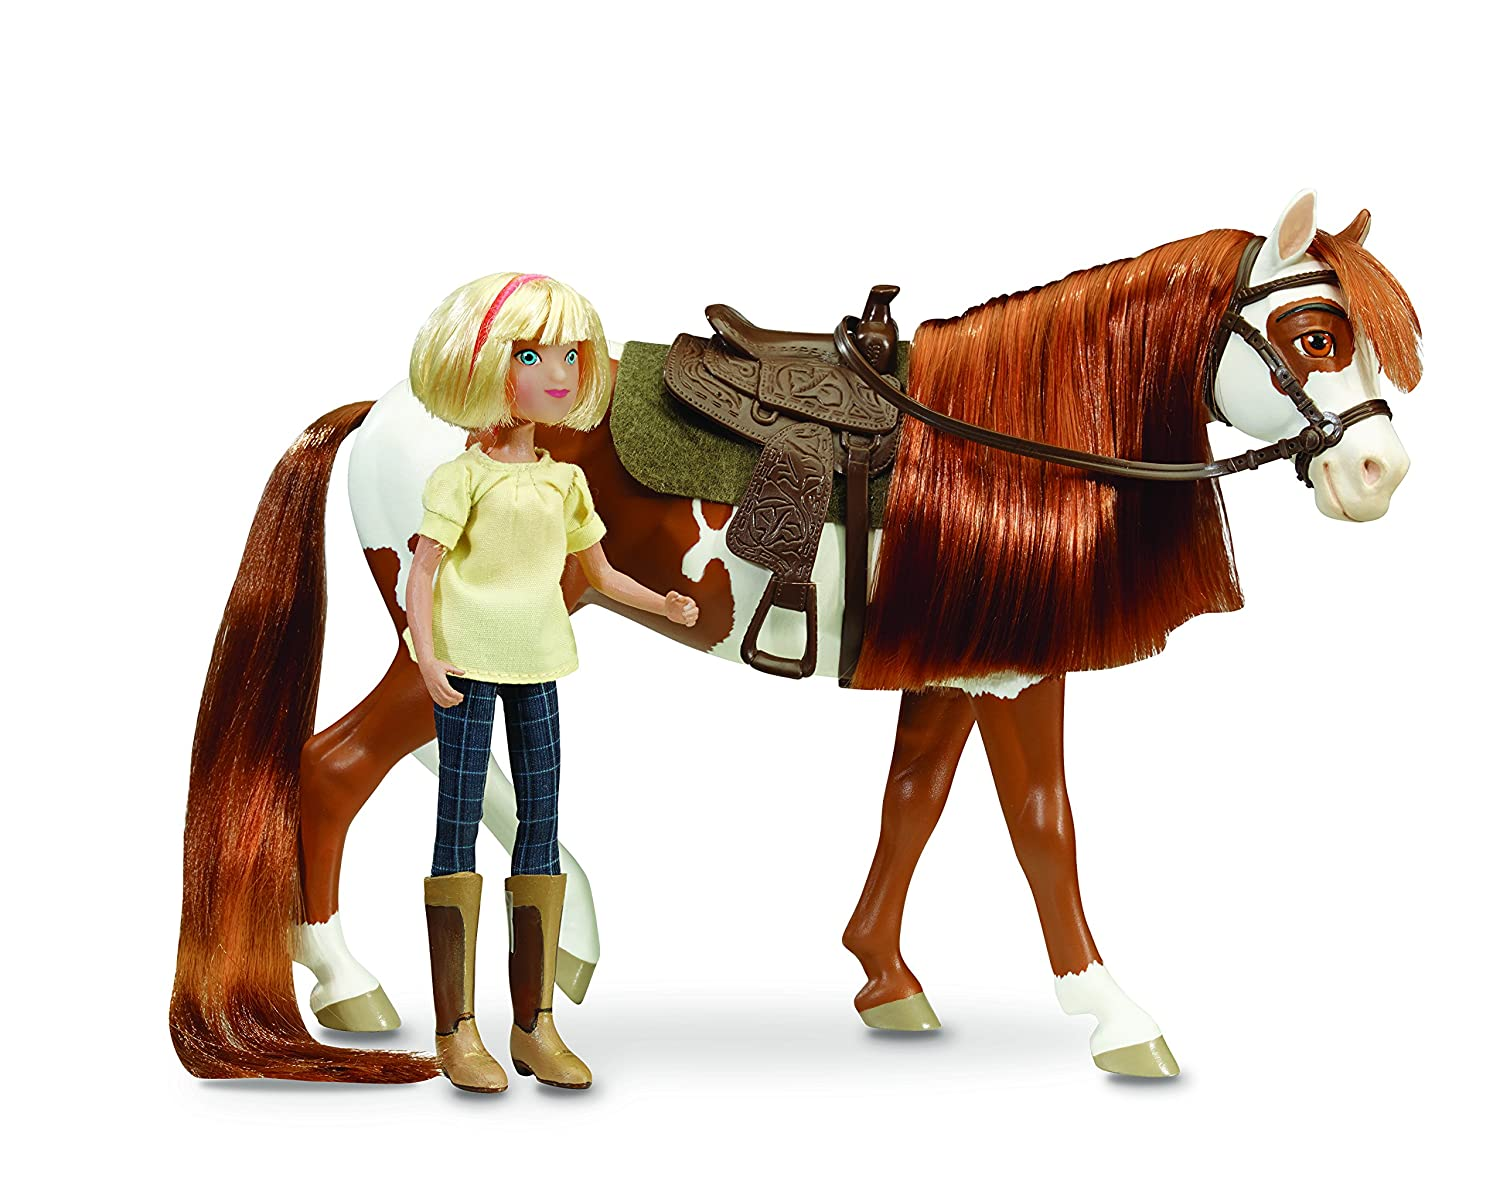 Breyer Spirit Riding Free - Spirit and Lucky Horse Doll Gift Set Reeves (Breyer) Int'l 9203 Accessory Consumer Accessories